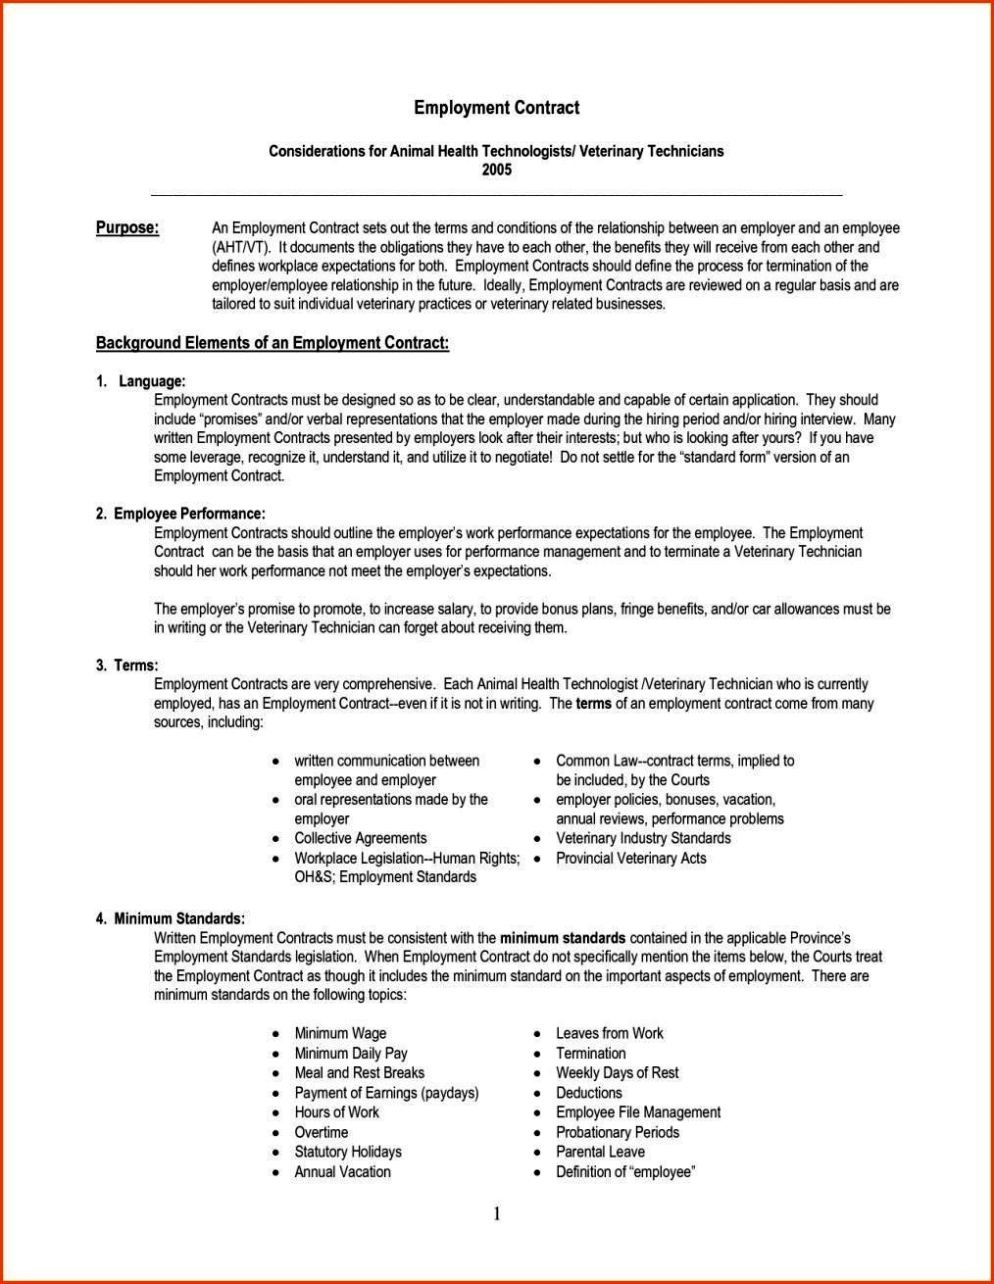 employee agreement is a contract between an employer and employee ...